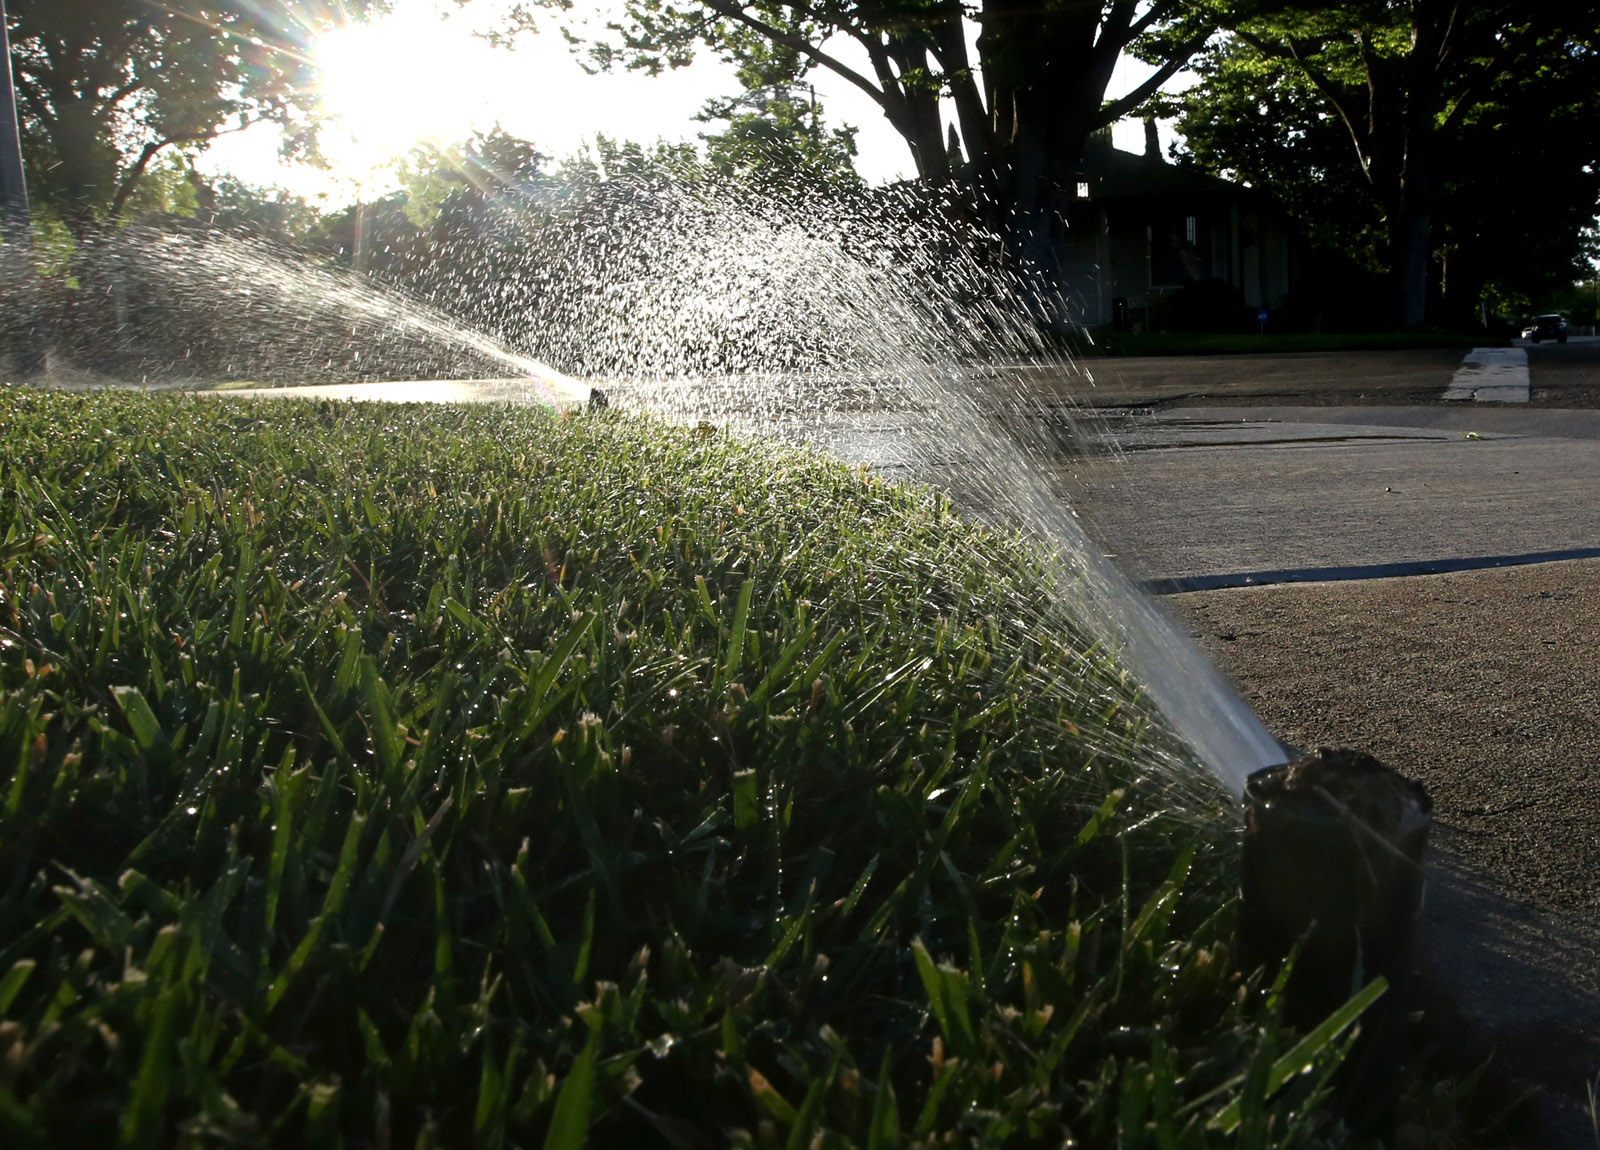 Staying Hydrated: How To Take Care Of Your Lawn, Plants In Blazing Temps |  WTOP